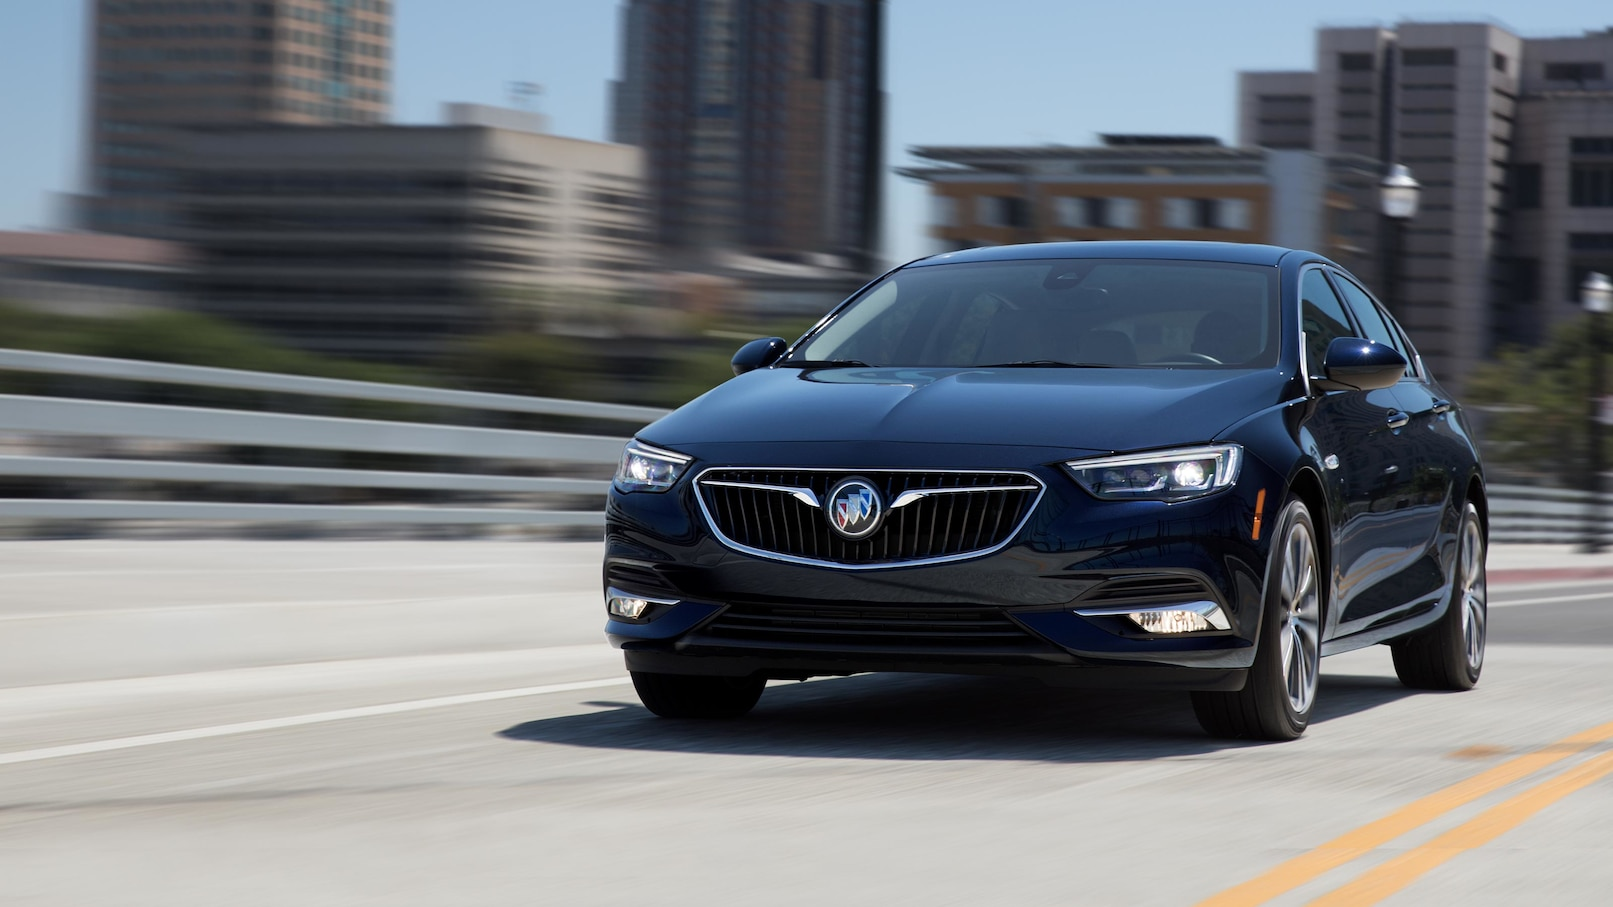 Buick Regal: Customer Satisfaction Procedure